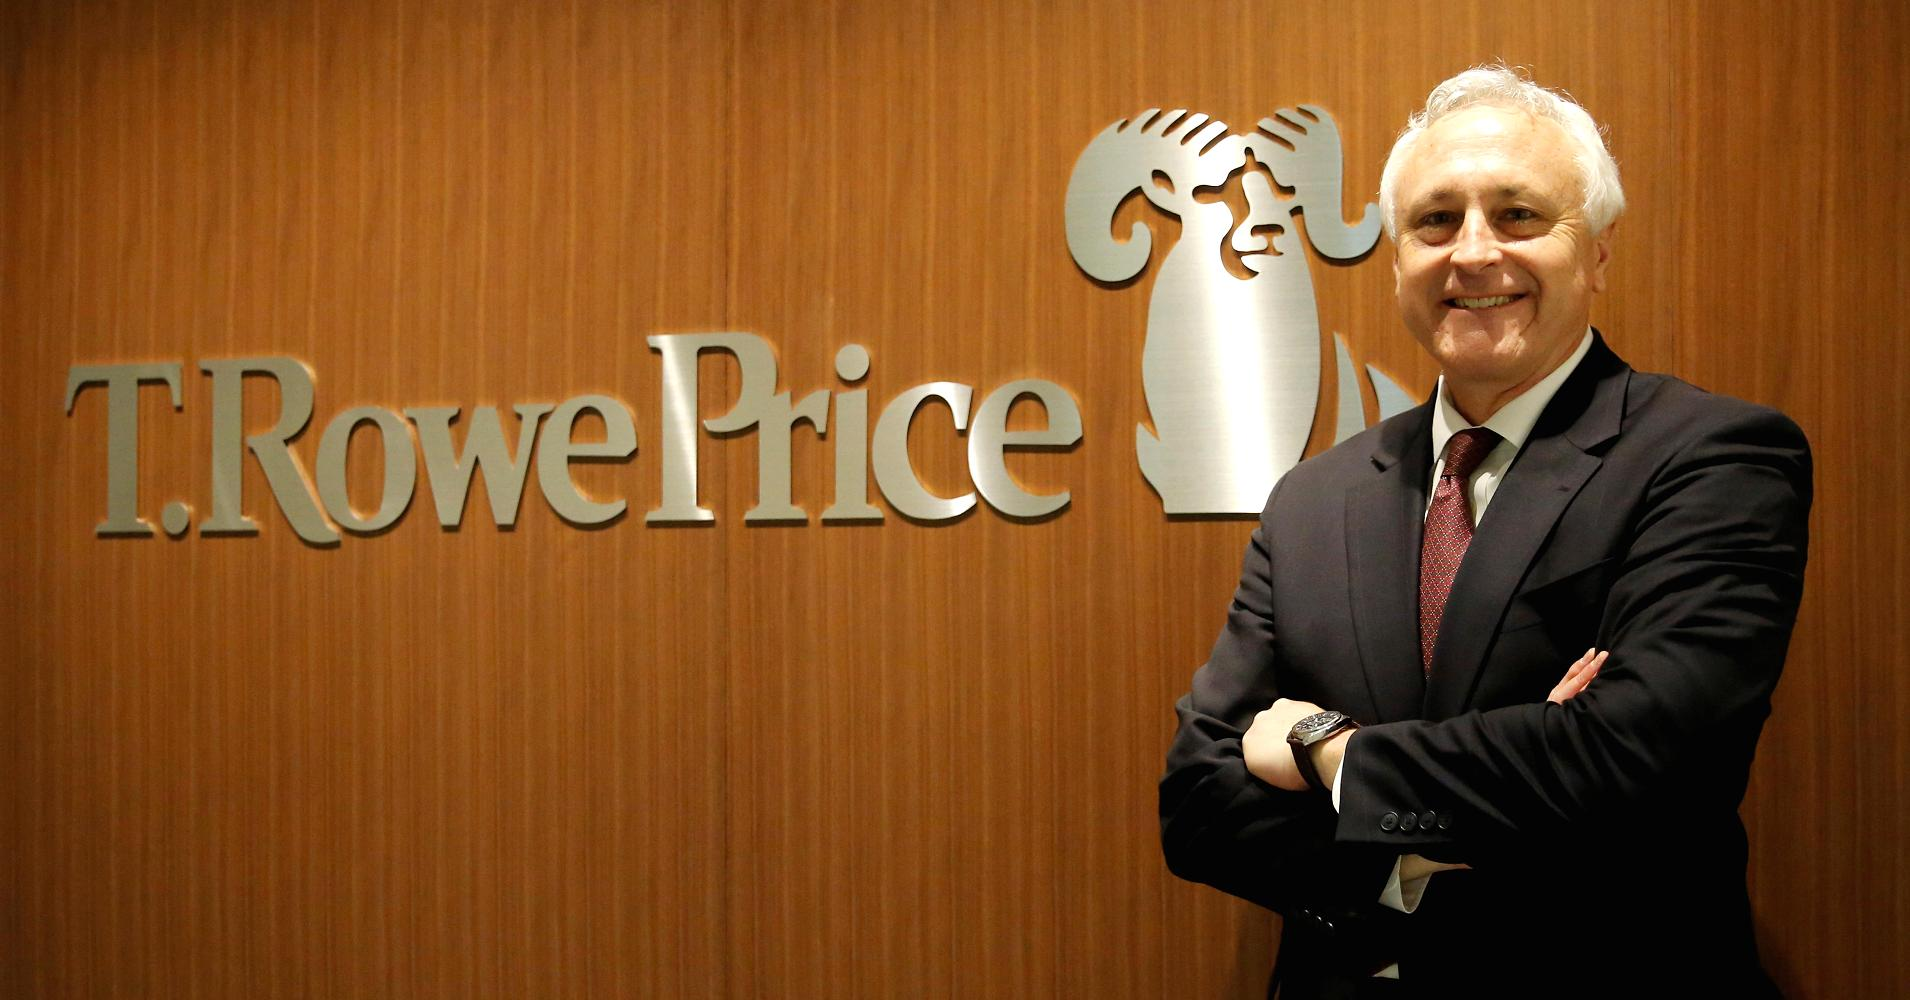 The controversial 'fiduciary rule' is a problem for T. Rowe Price; sell the stock, UBS says